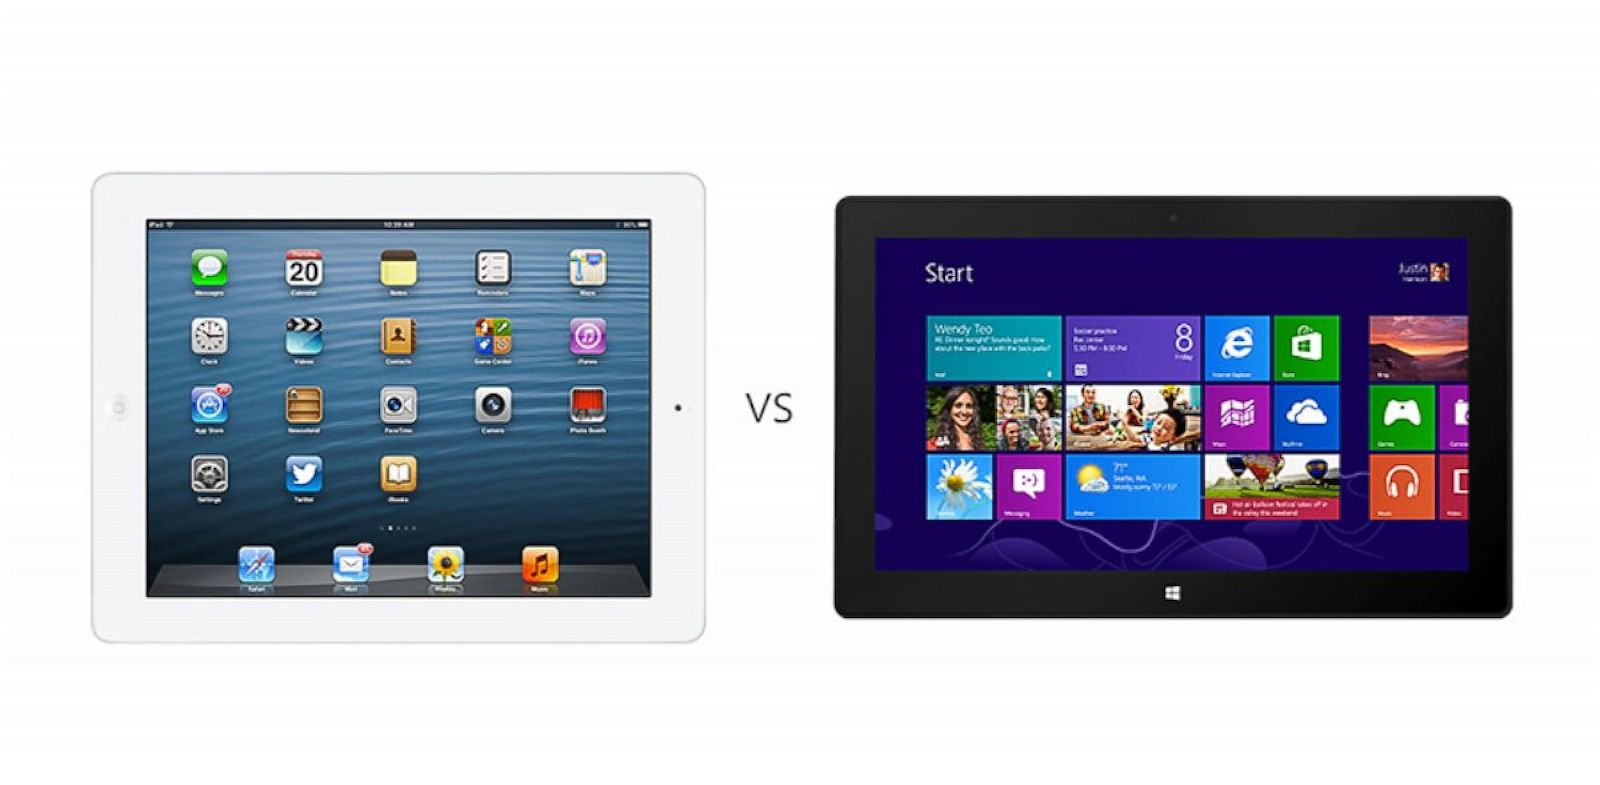 PHOTO: Microsoft lists comparisons between its Surface tablet and Apples iPad on its website.